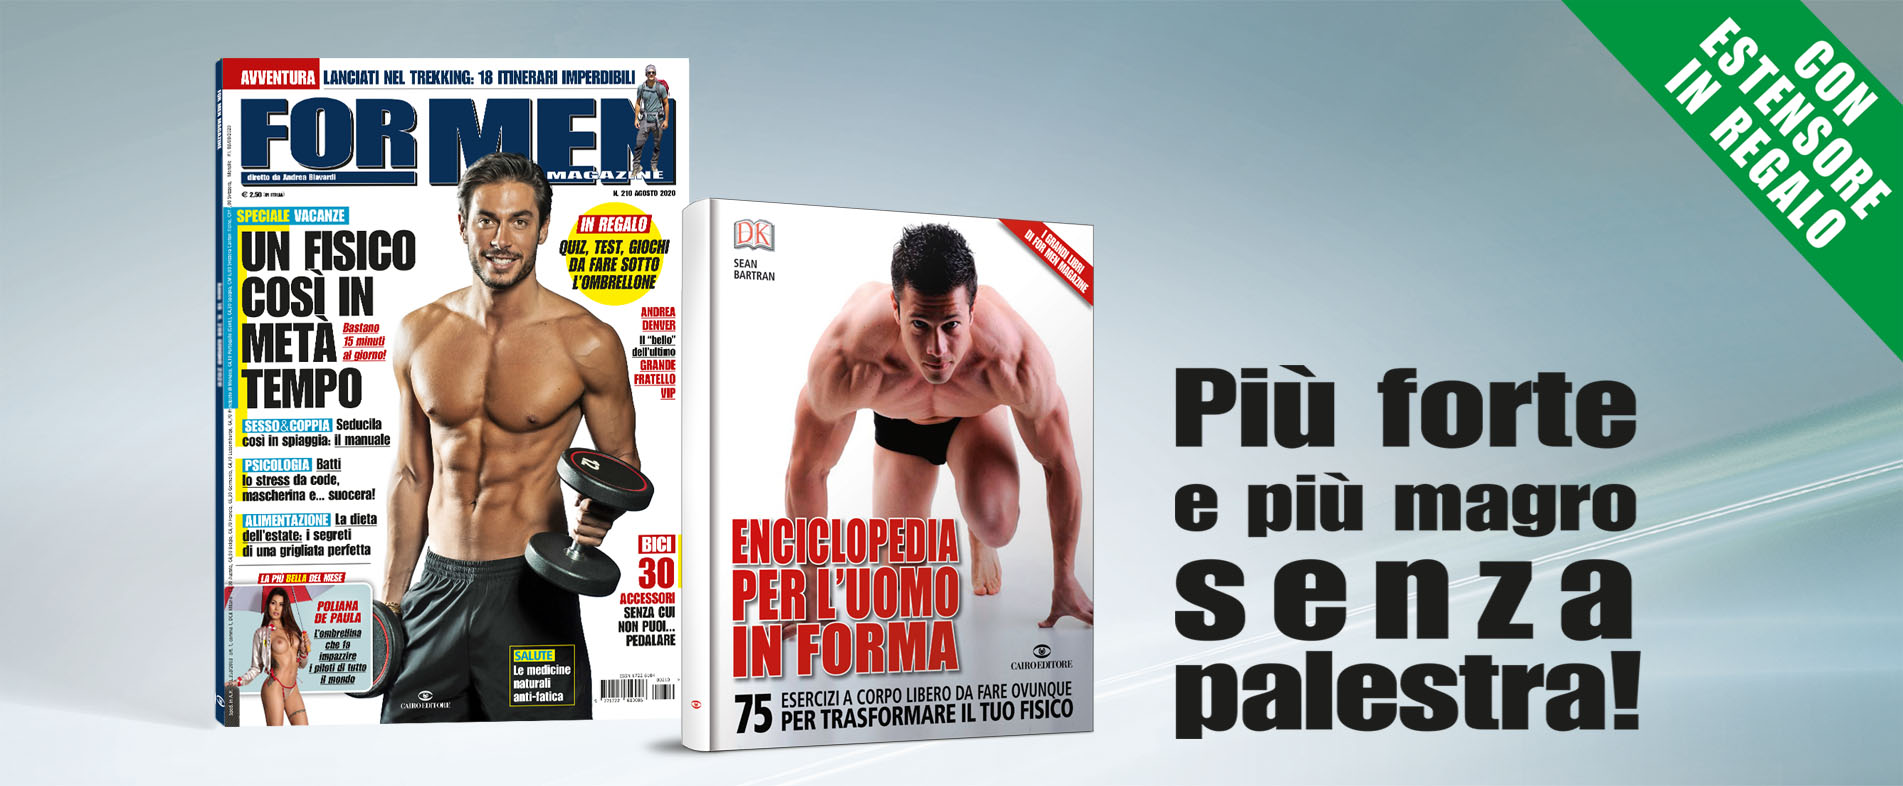 Enciclopedia per l'uomo in forma - I volume